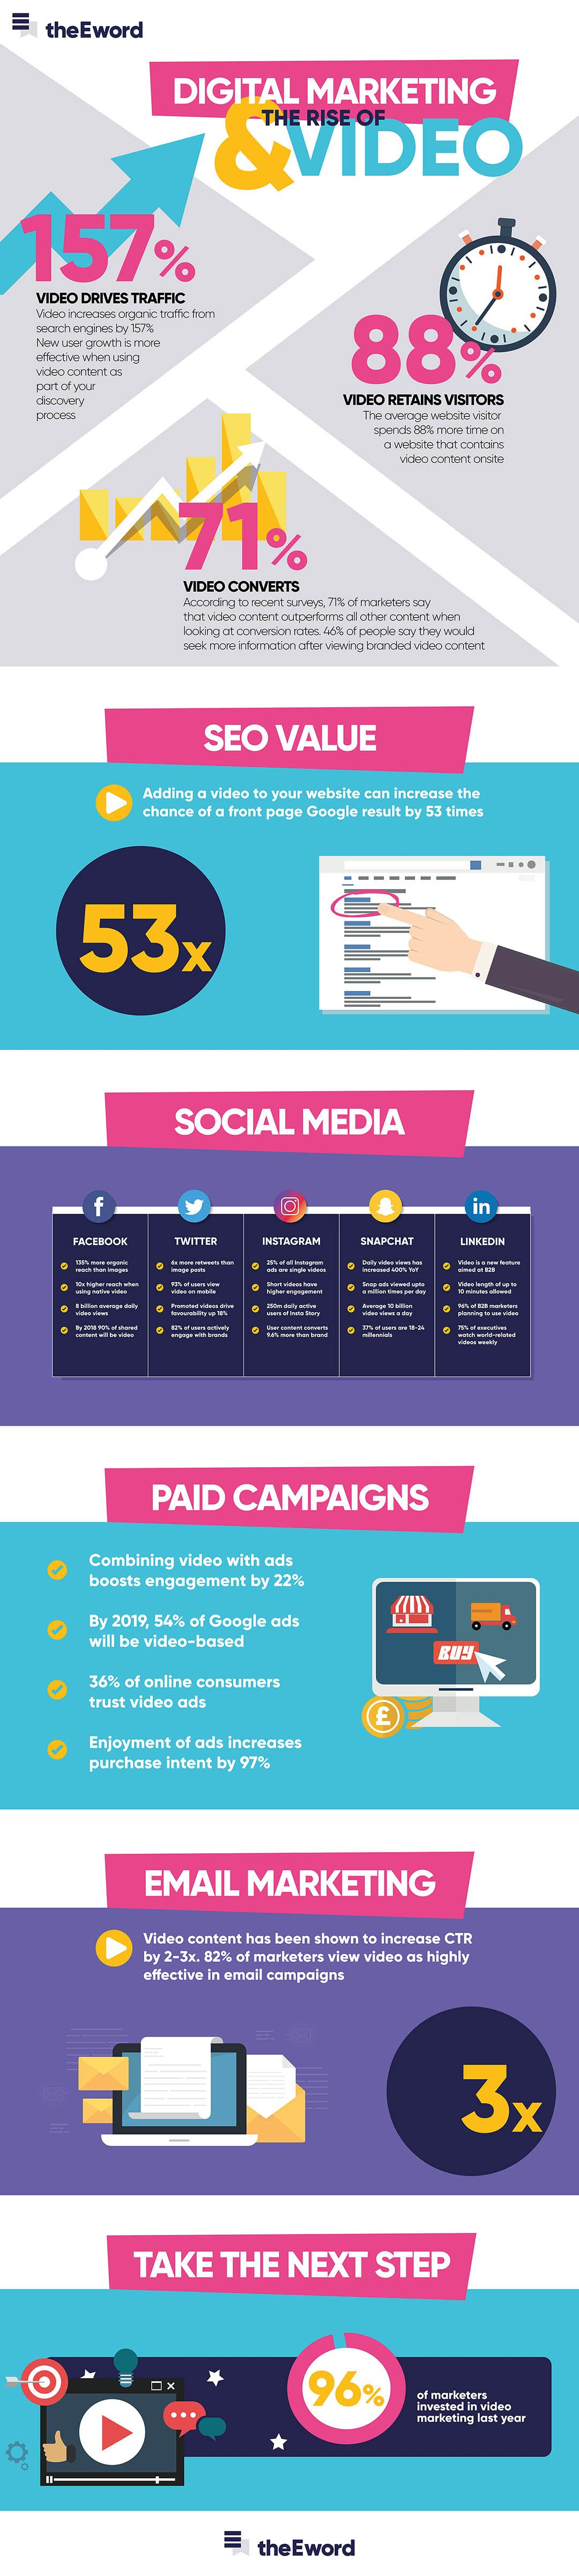 infographie-digital-marketing-video-theeword-2017